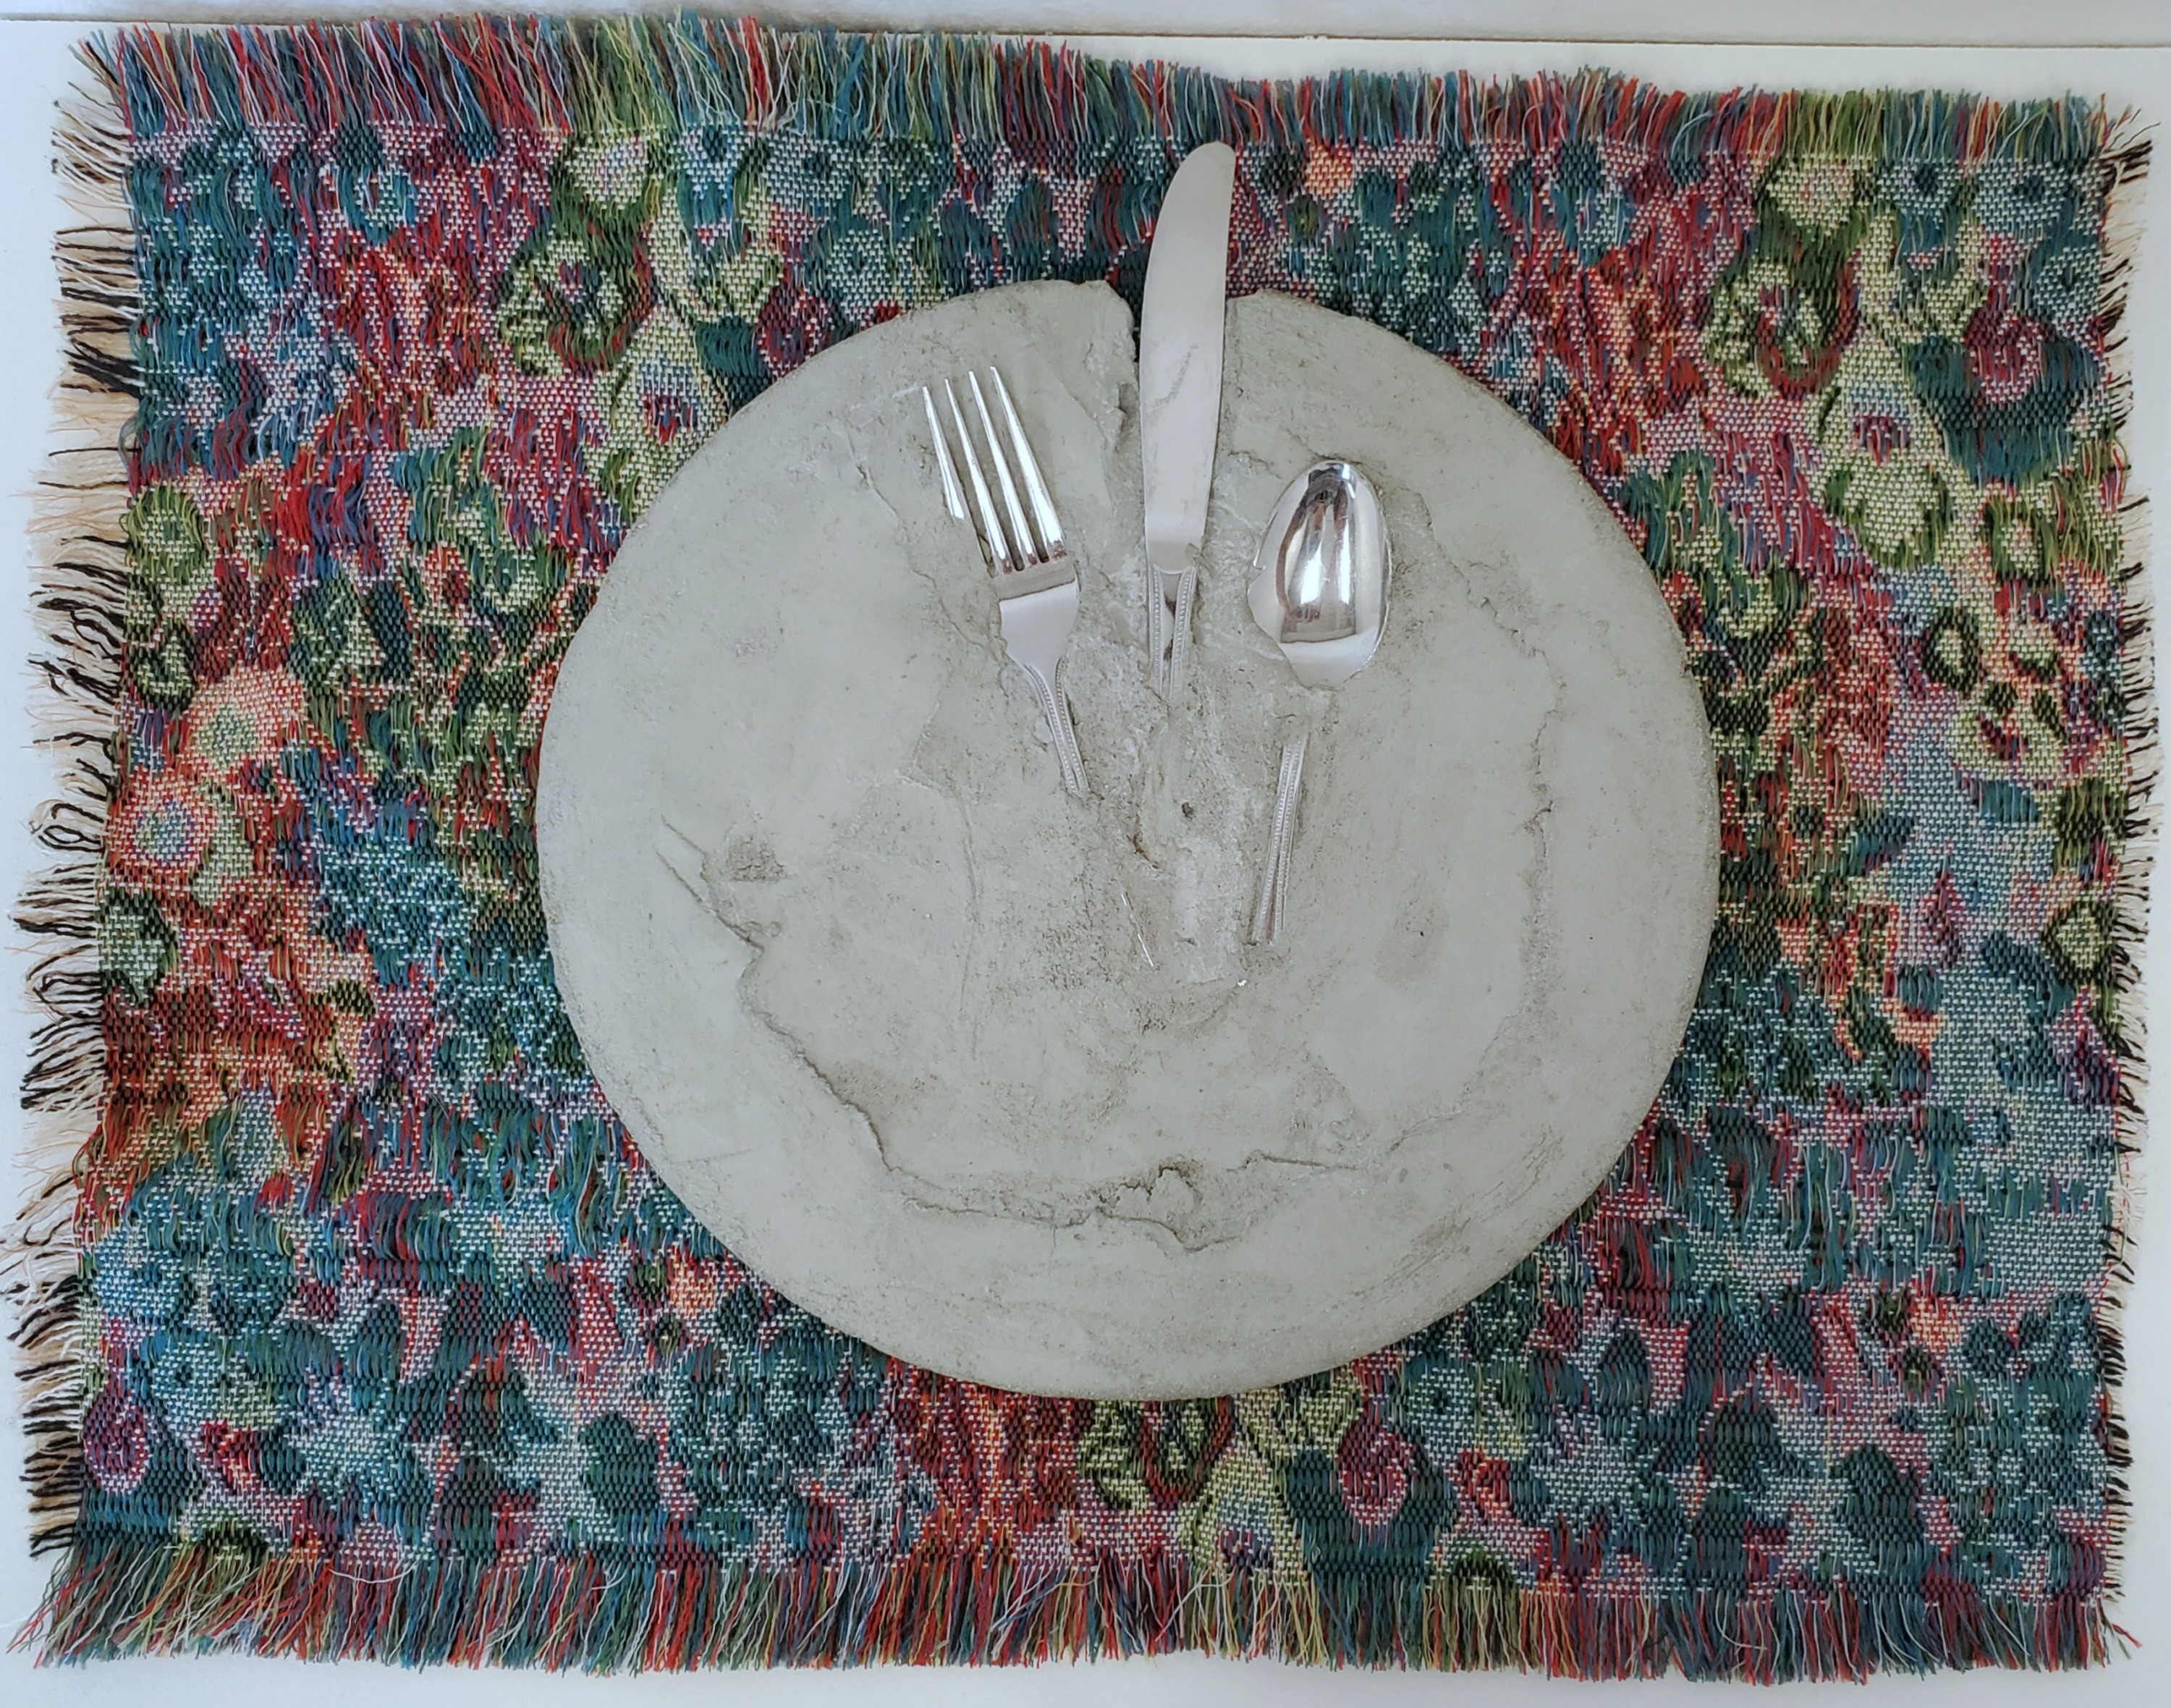 A plate on a placemat. The plate is cement with a fork, knife, and spoon Imbedded in it. The placemat is a rectangle, multicolored jewel toned floral. It is the wrong side of the fabric. It has fringed edges all around.